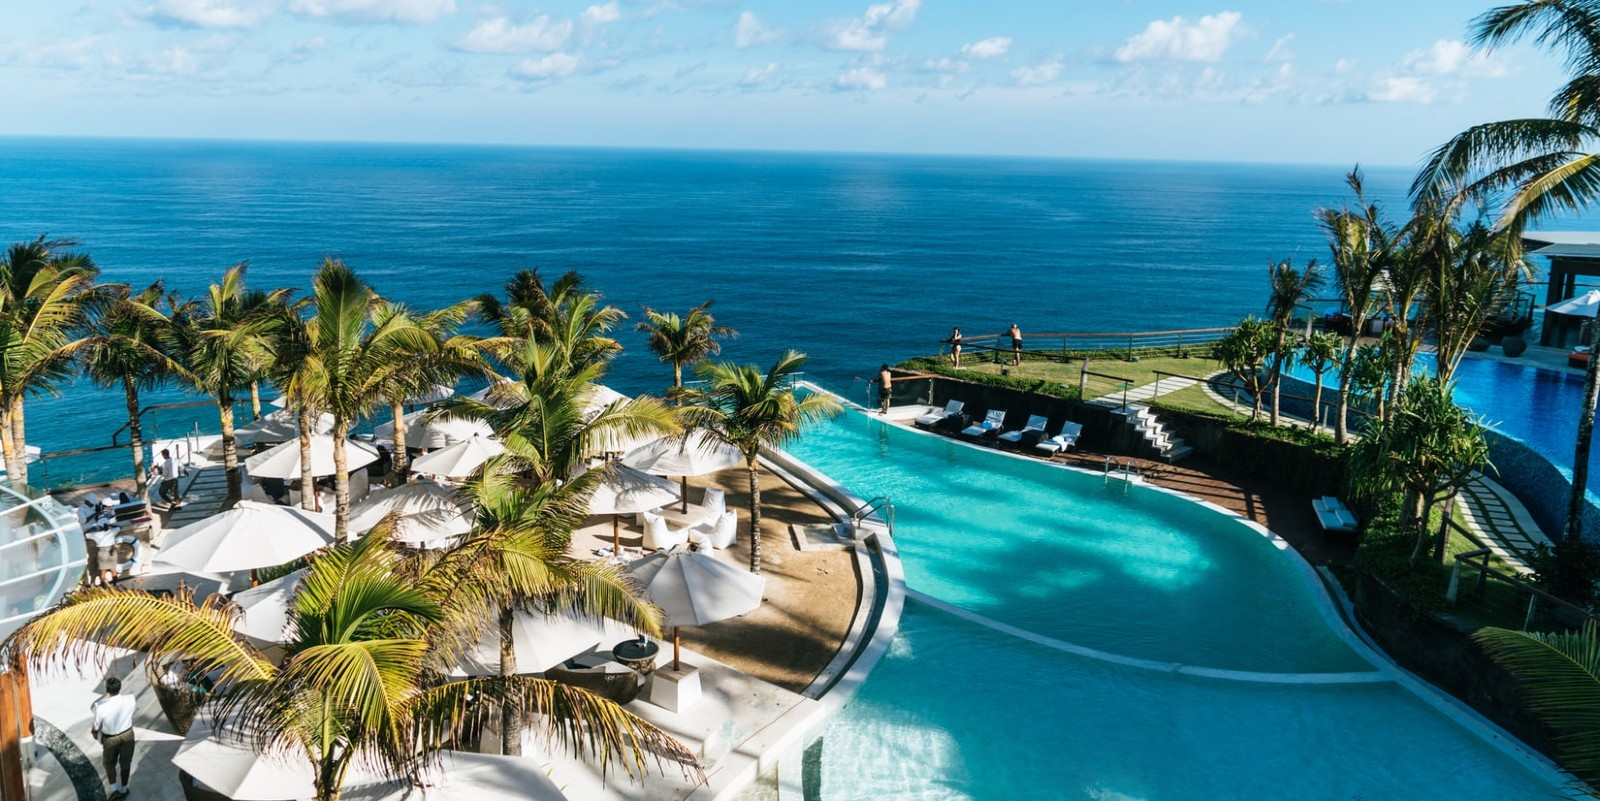 Travel blog: Our Top 4 Accessible All-Inclusive Resorts